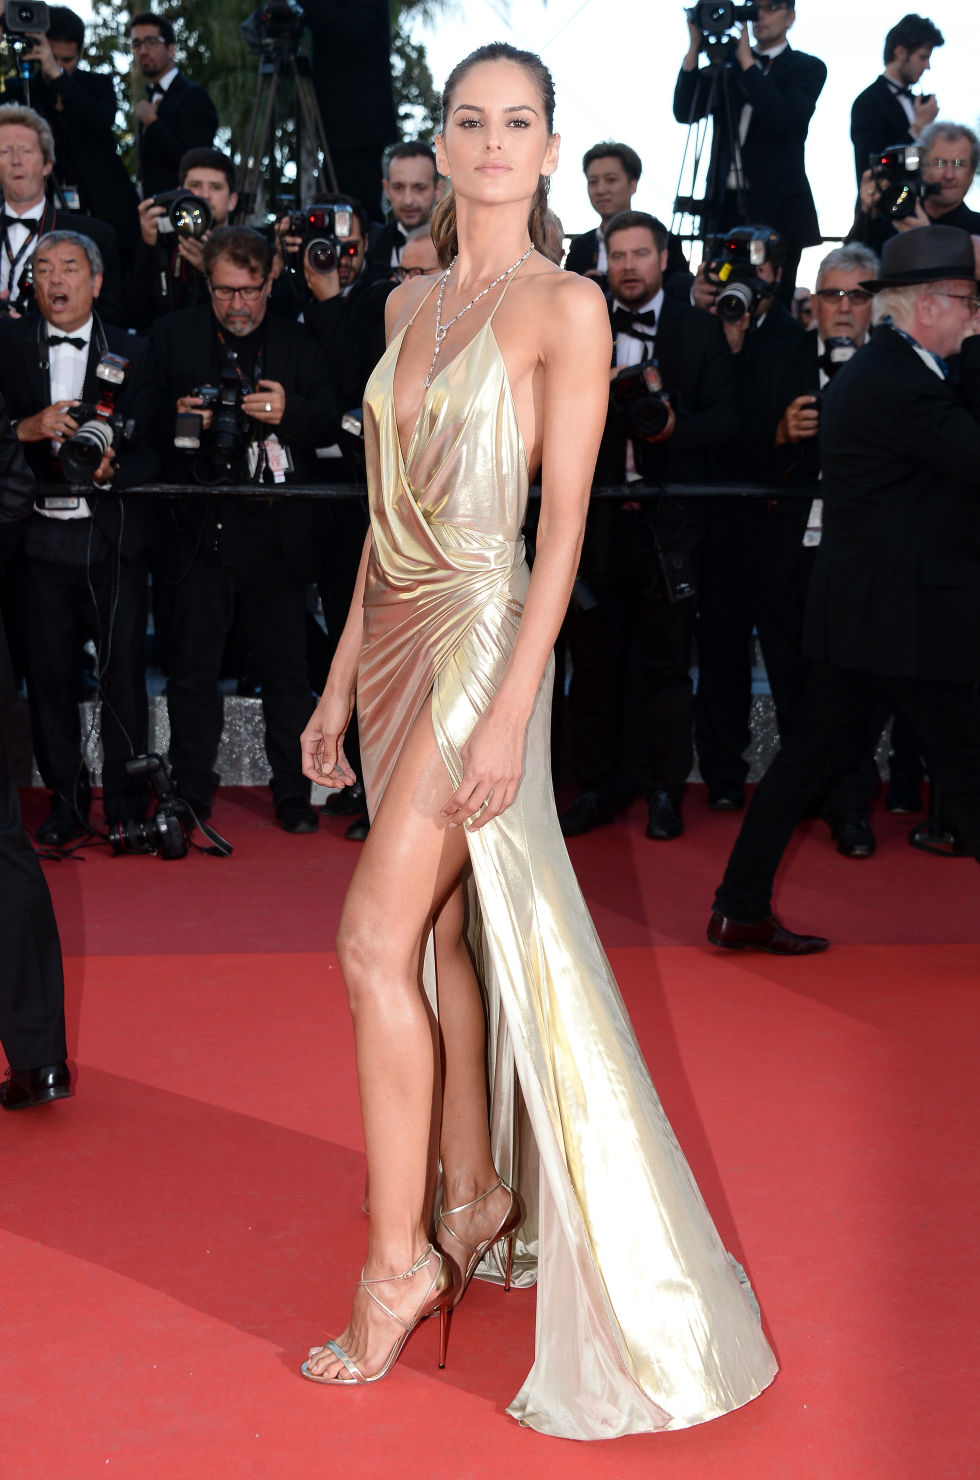 Best Red Carpet Dresses - Cannes 2016 best dressed celebrity style cannes red carpet fashion photos